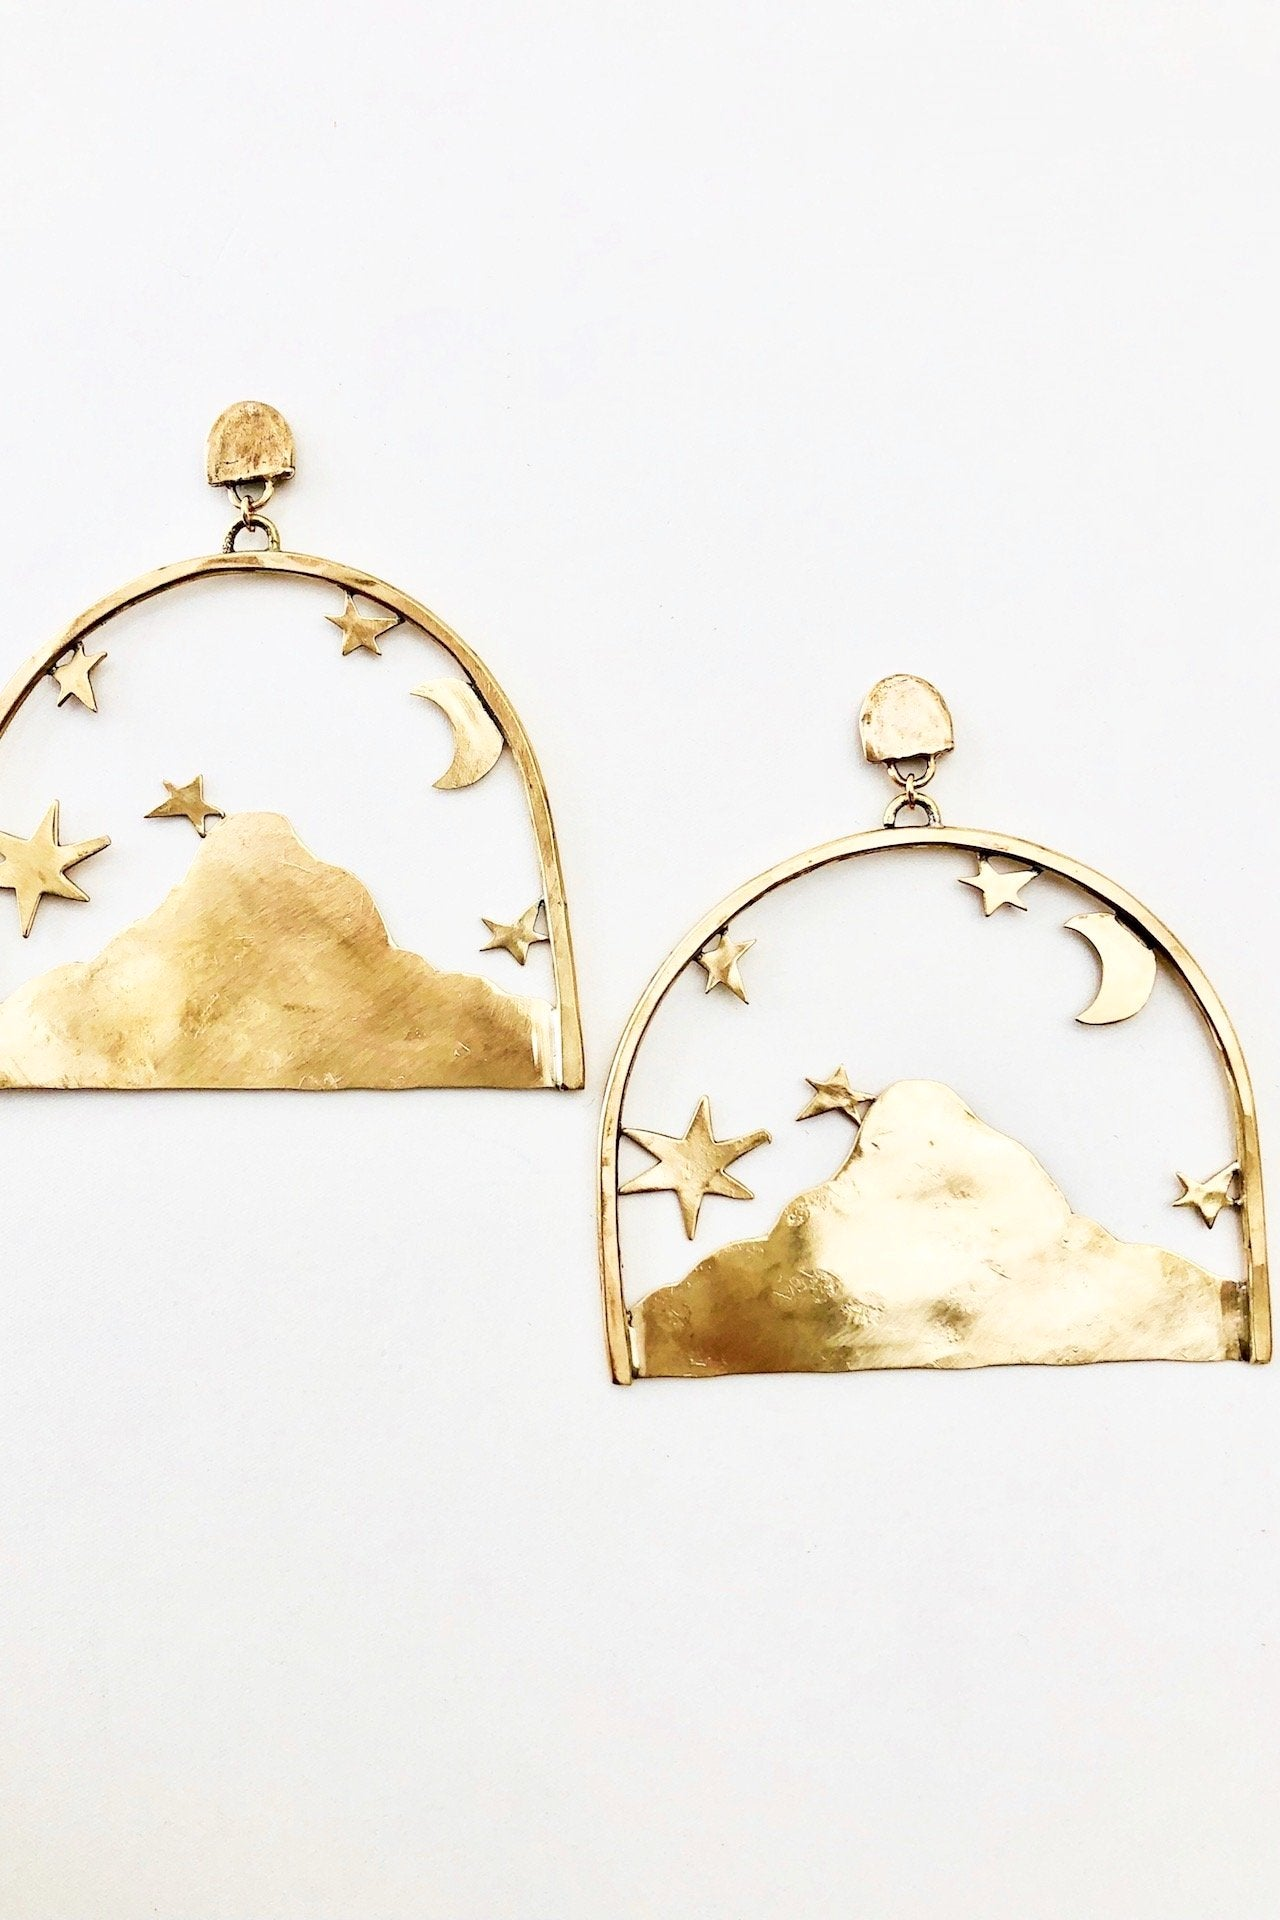 52d684777 Summit Night Large Earrings – CLC by Corey Lynn Calter